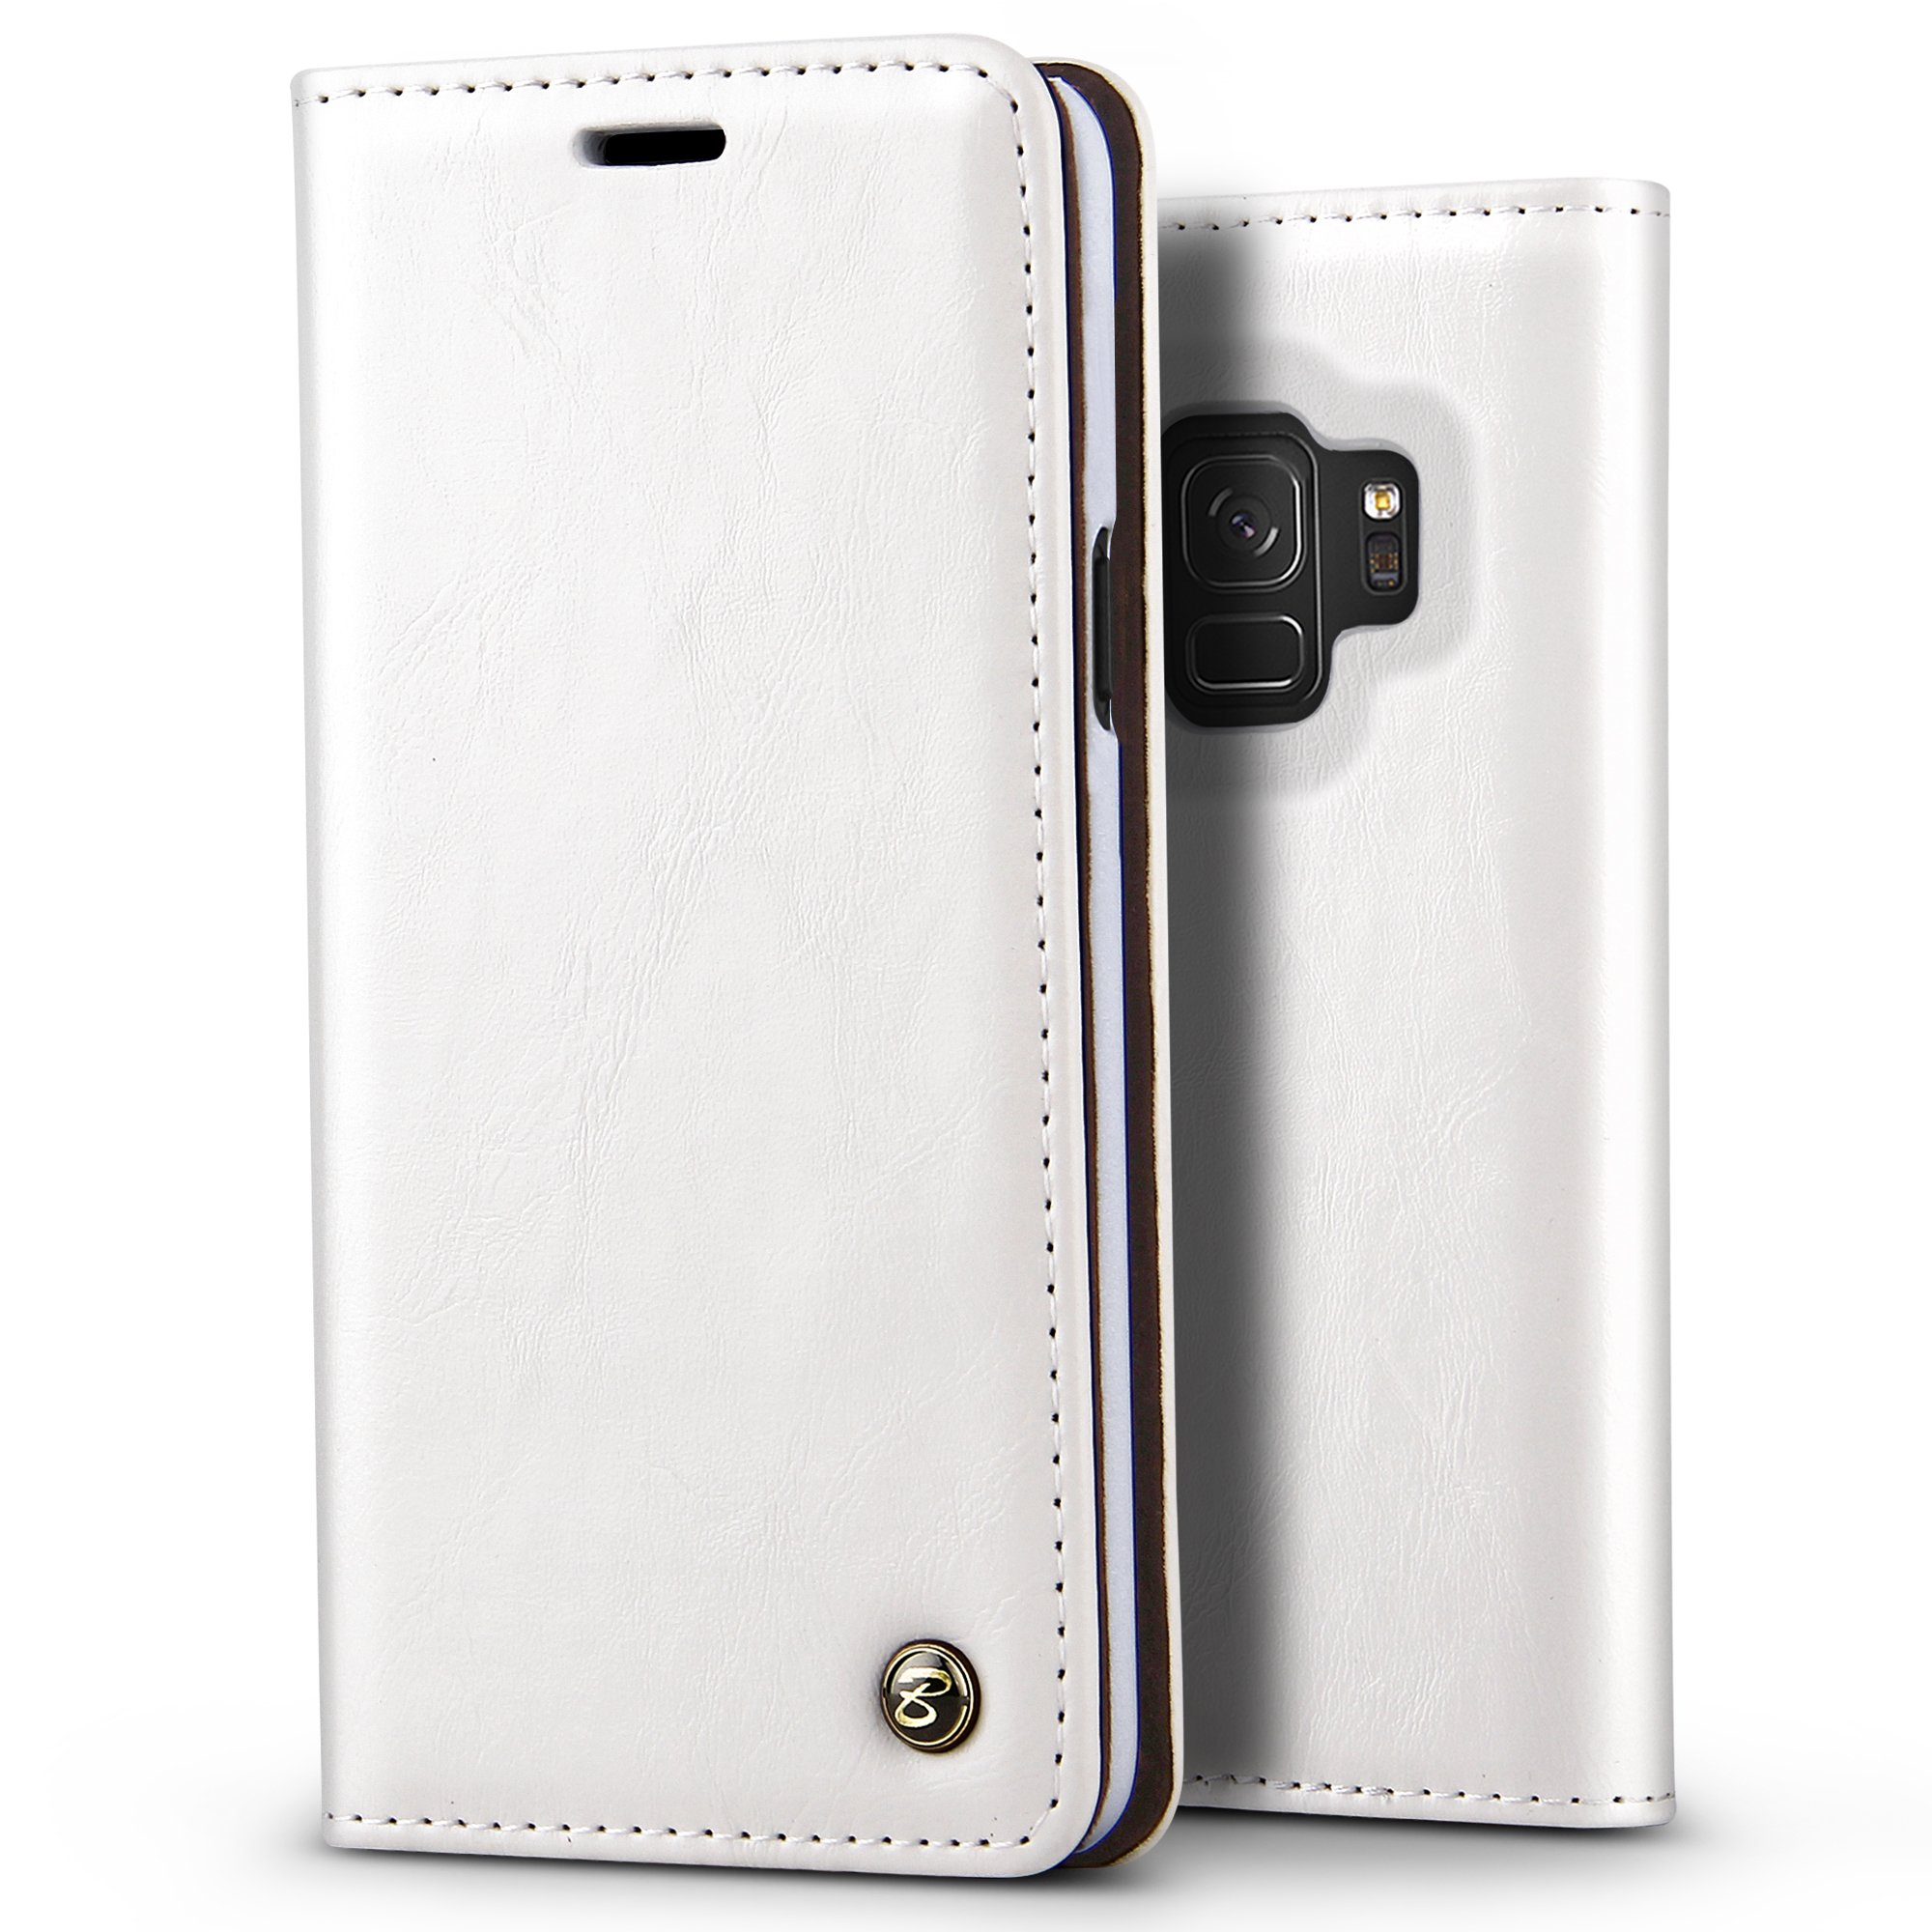 B Belk Galaxy S9 Case, Vintage Book Style Glossy PU Leather Wallet Case Embedded Magnetic Closure [1 Card Slot] Hard PC Protective Bumper Cover w/Kickstand for Samsung Galaxy S9 (White)